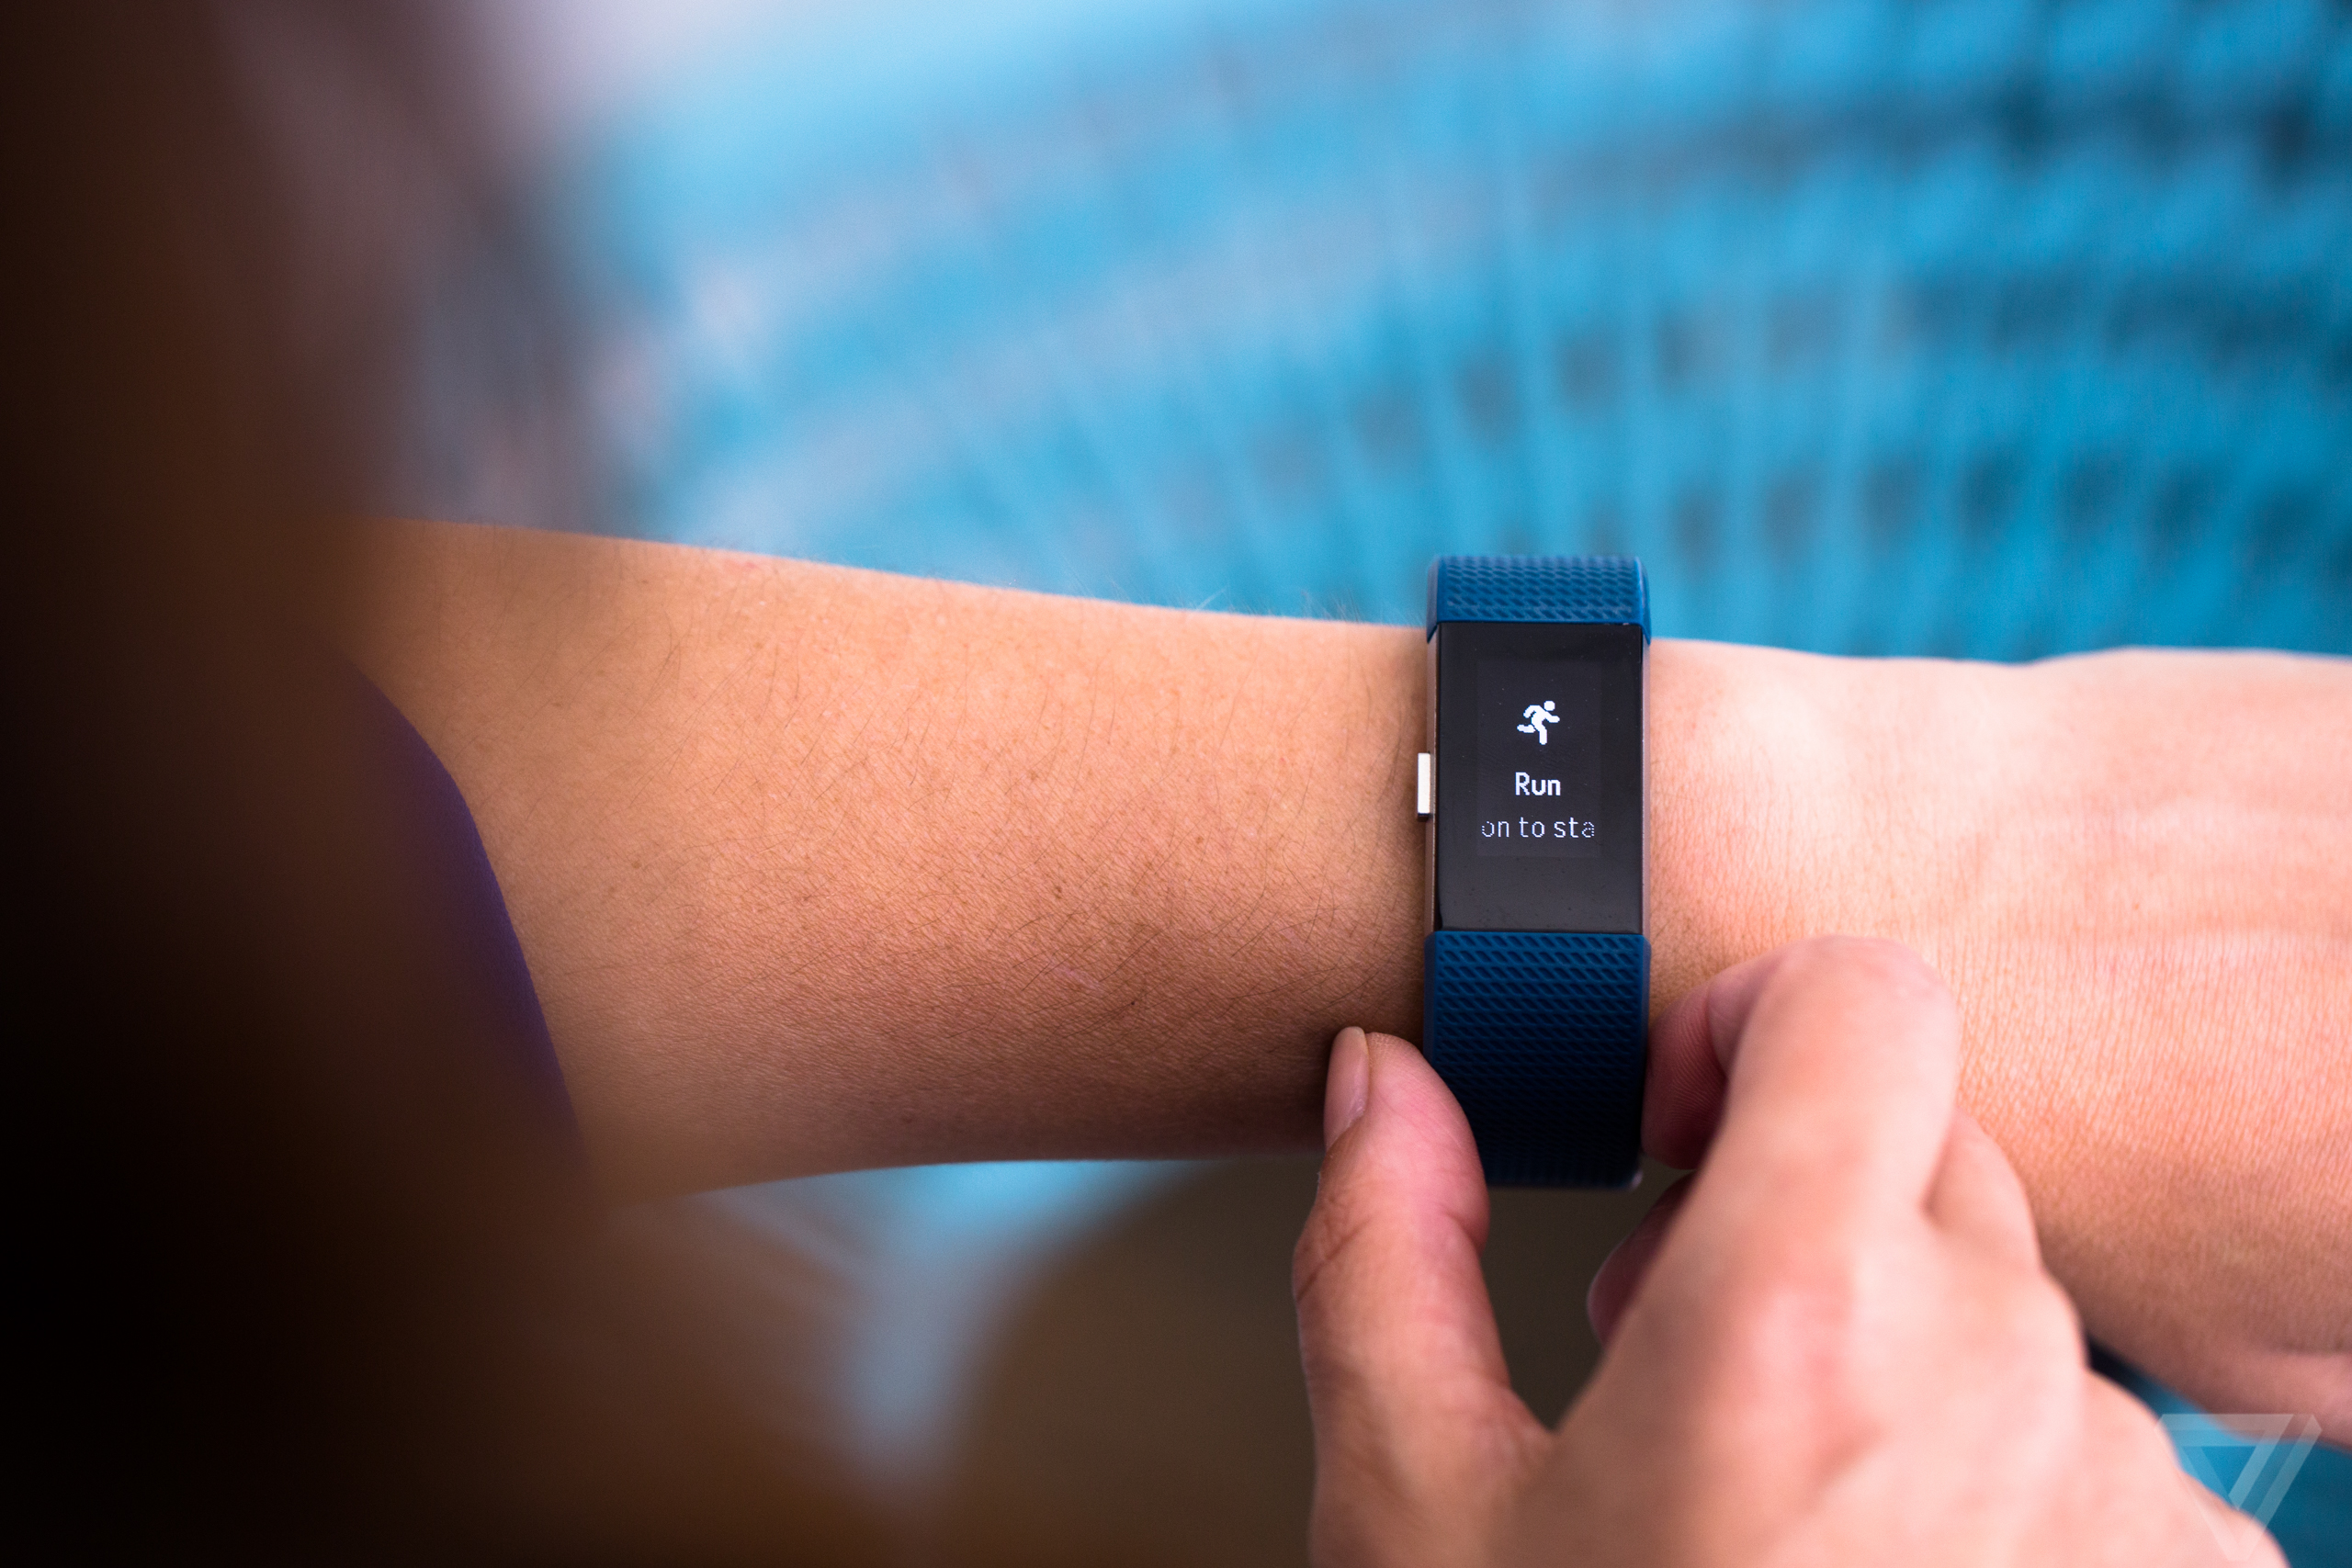 Fitbit Charge 2 review: a promising fitness tracker, plagued by bugs